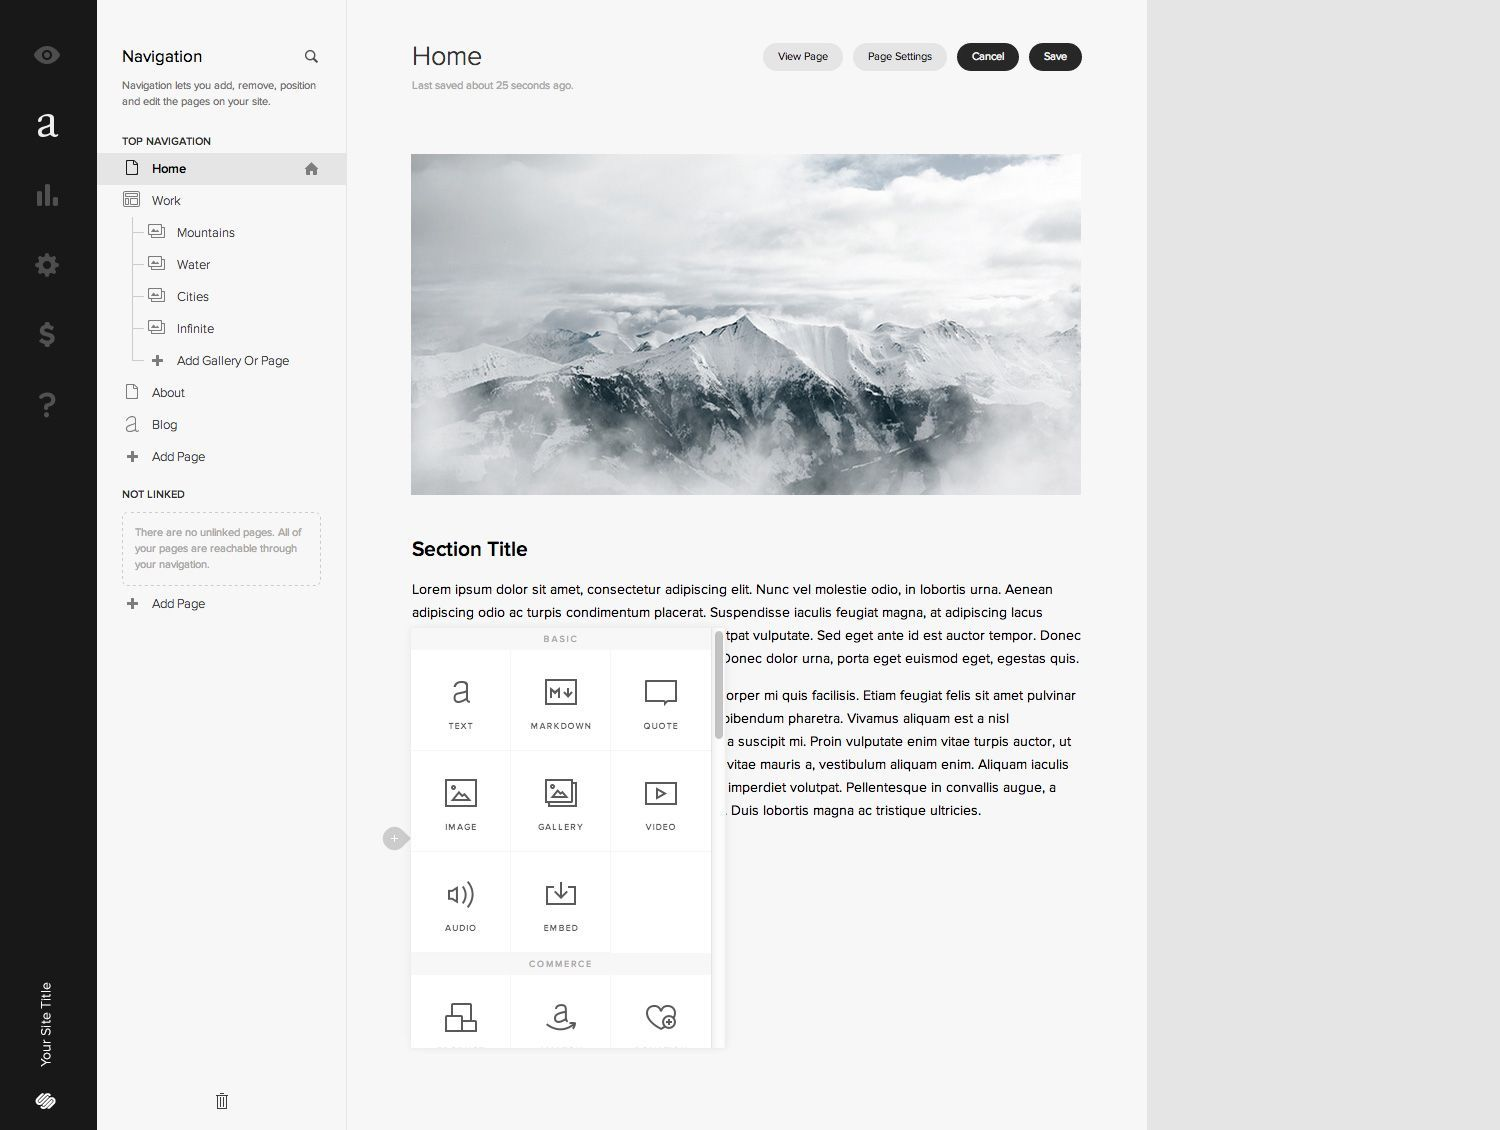 A look at the easy-to-use interface.